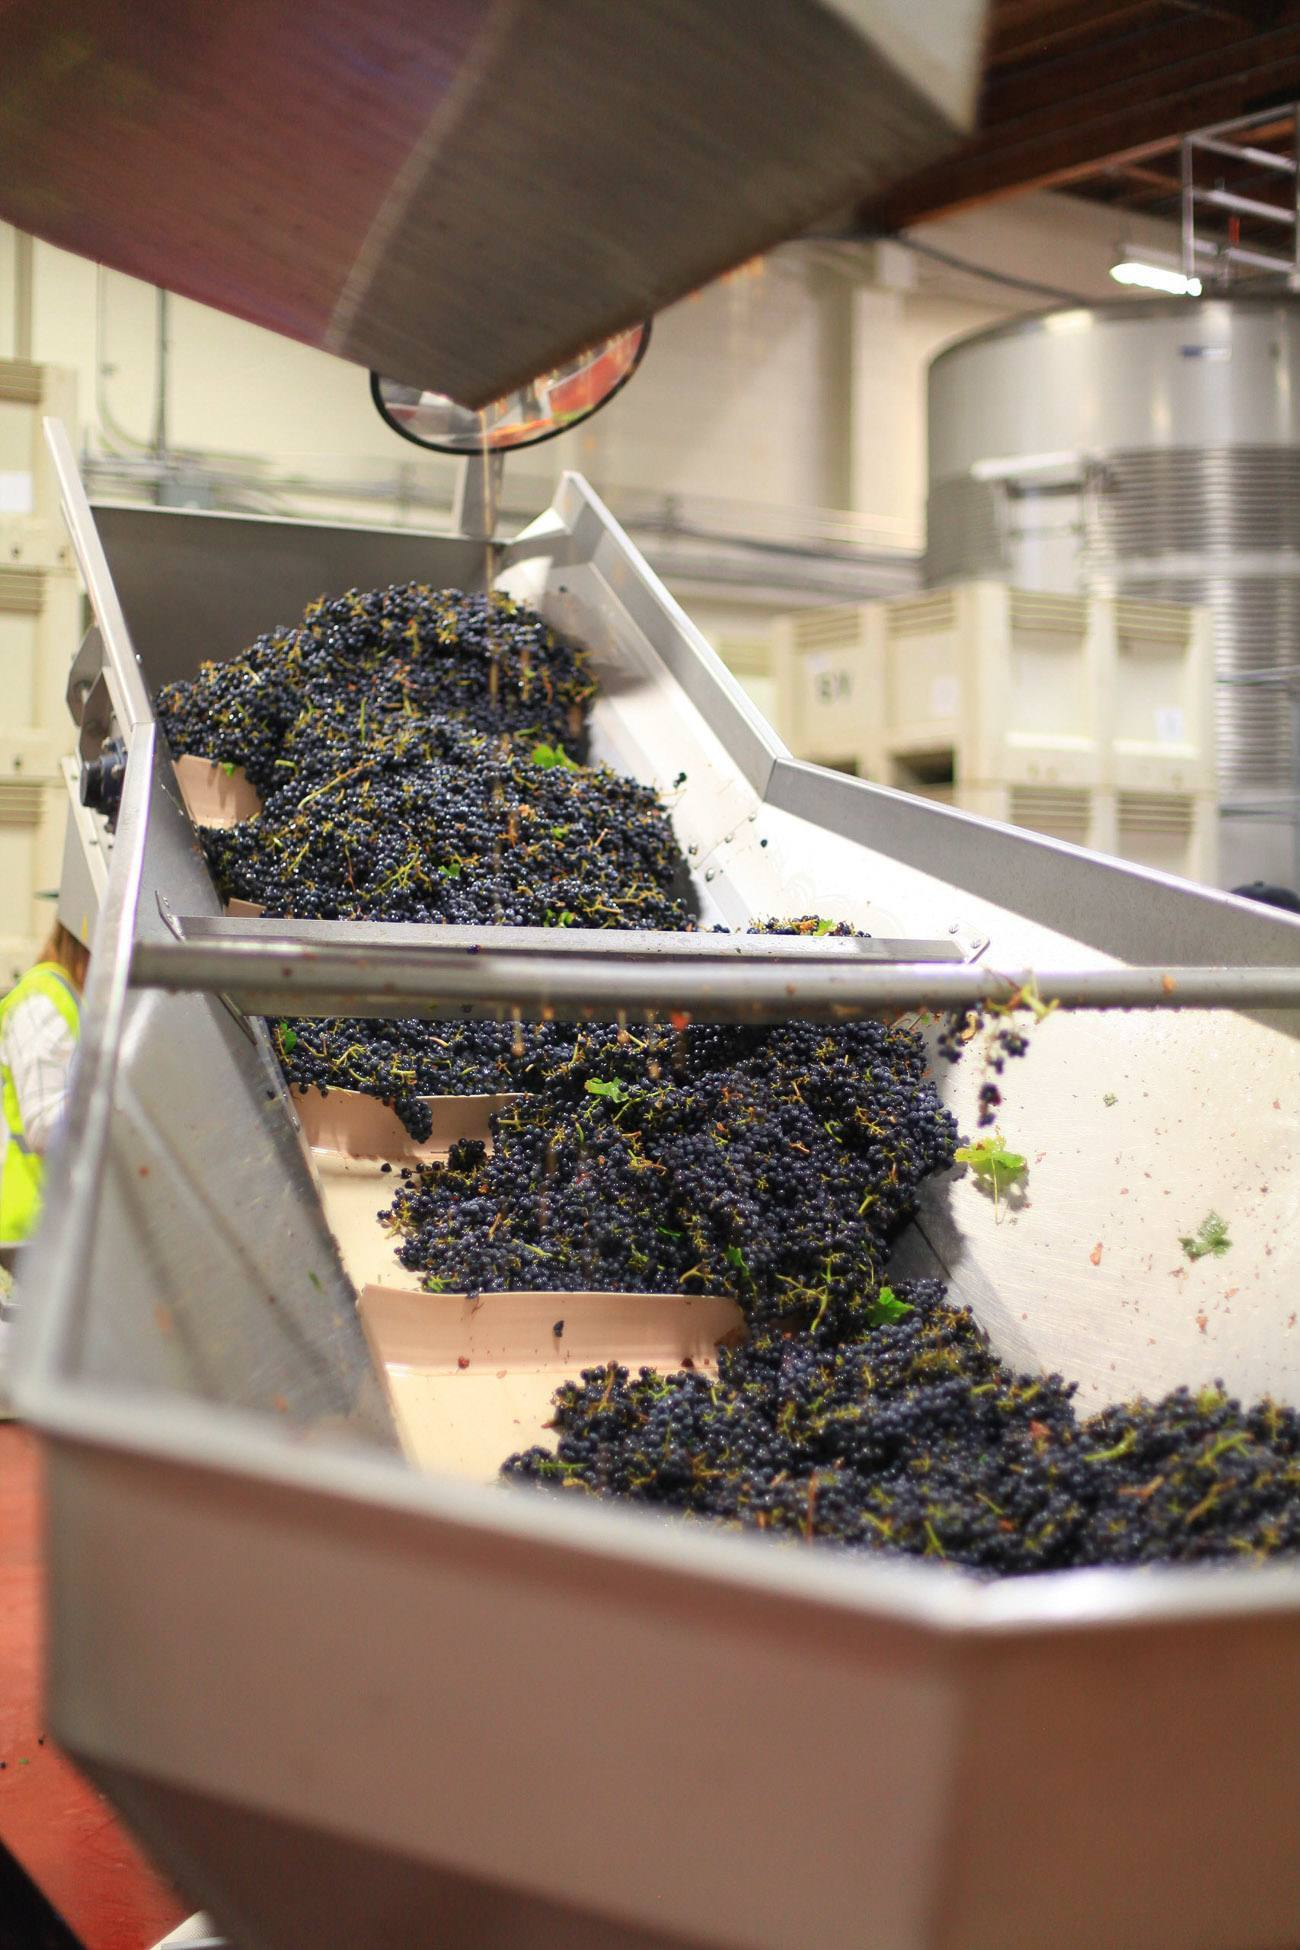 Grapes being sorted at Sterling Vineyards in Napa Valley